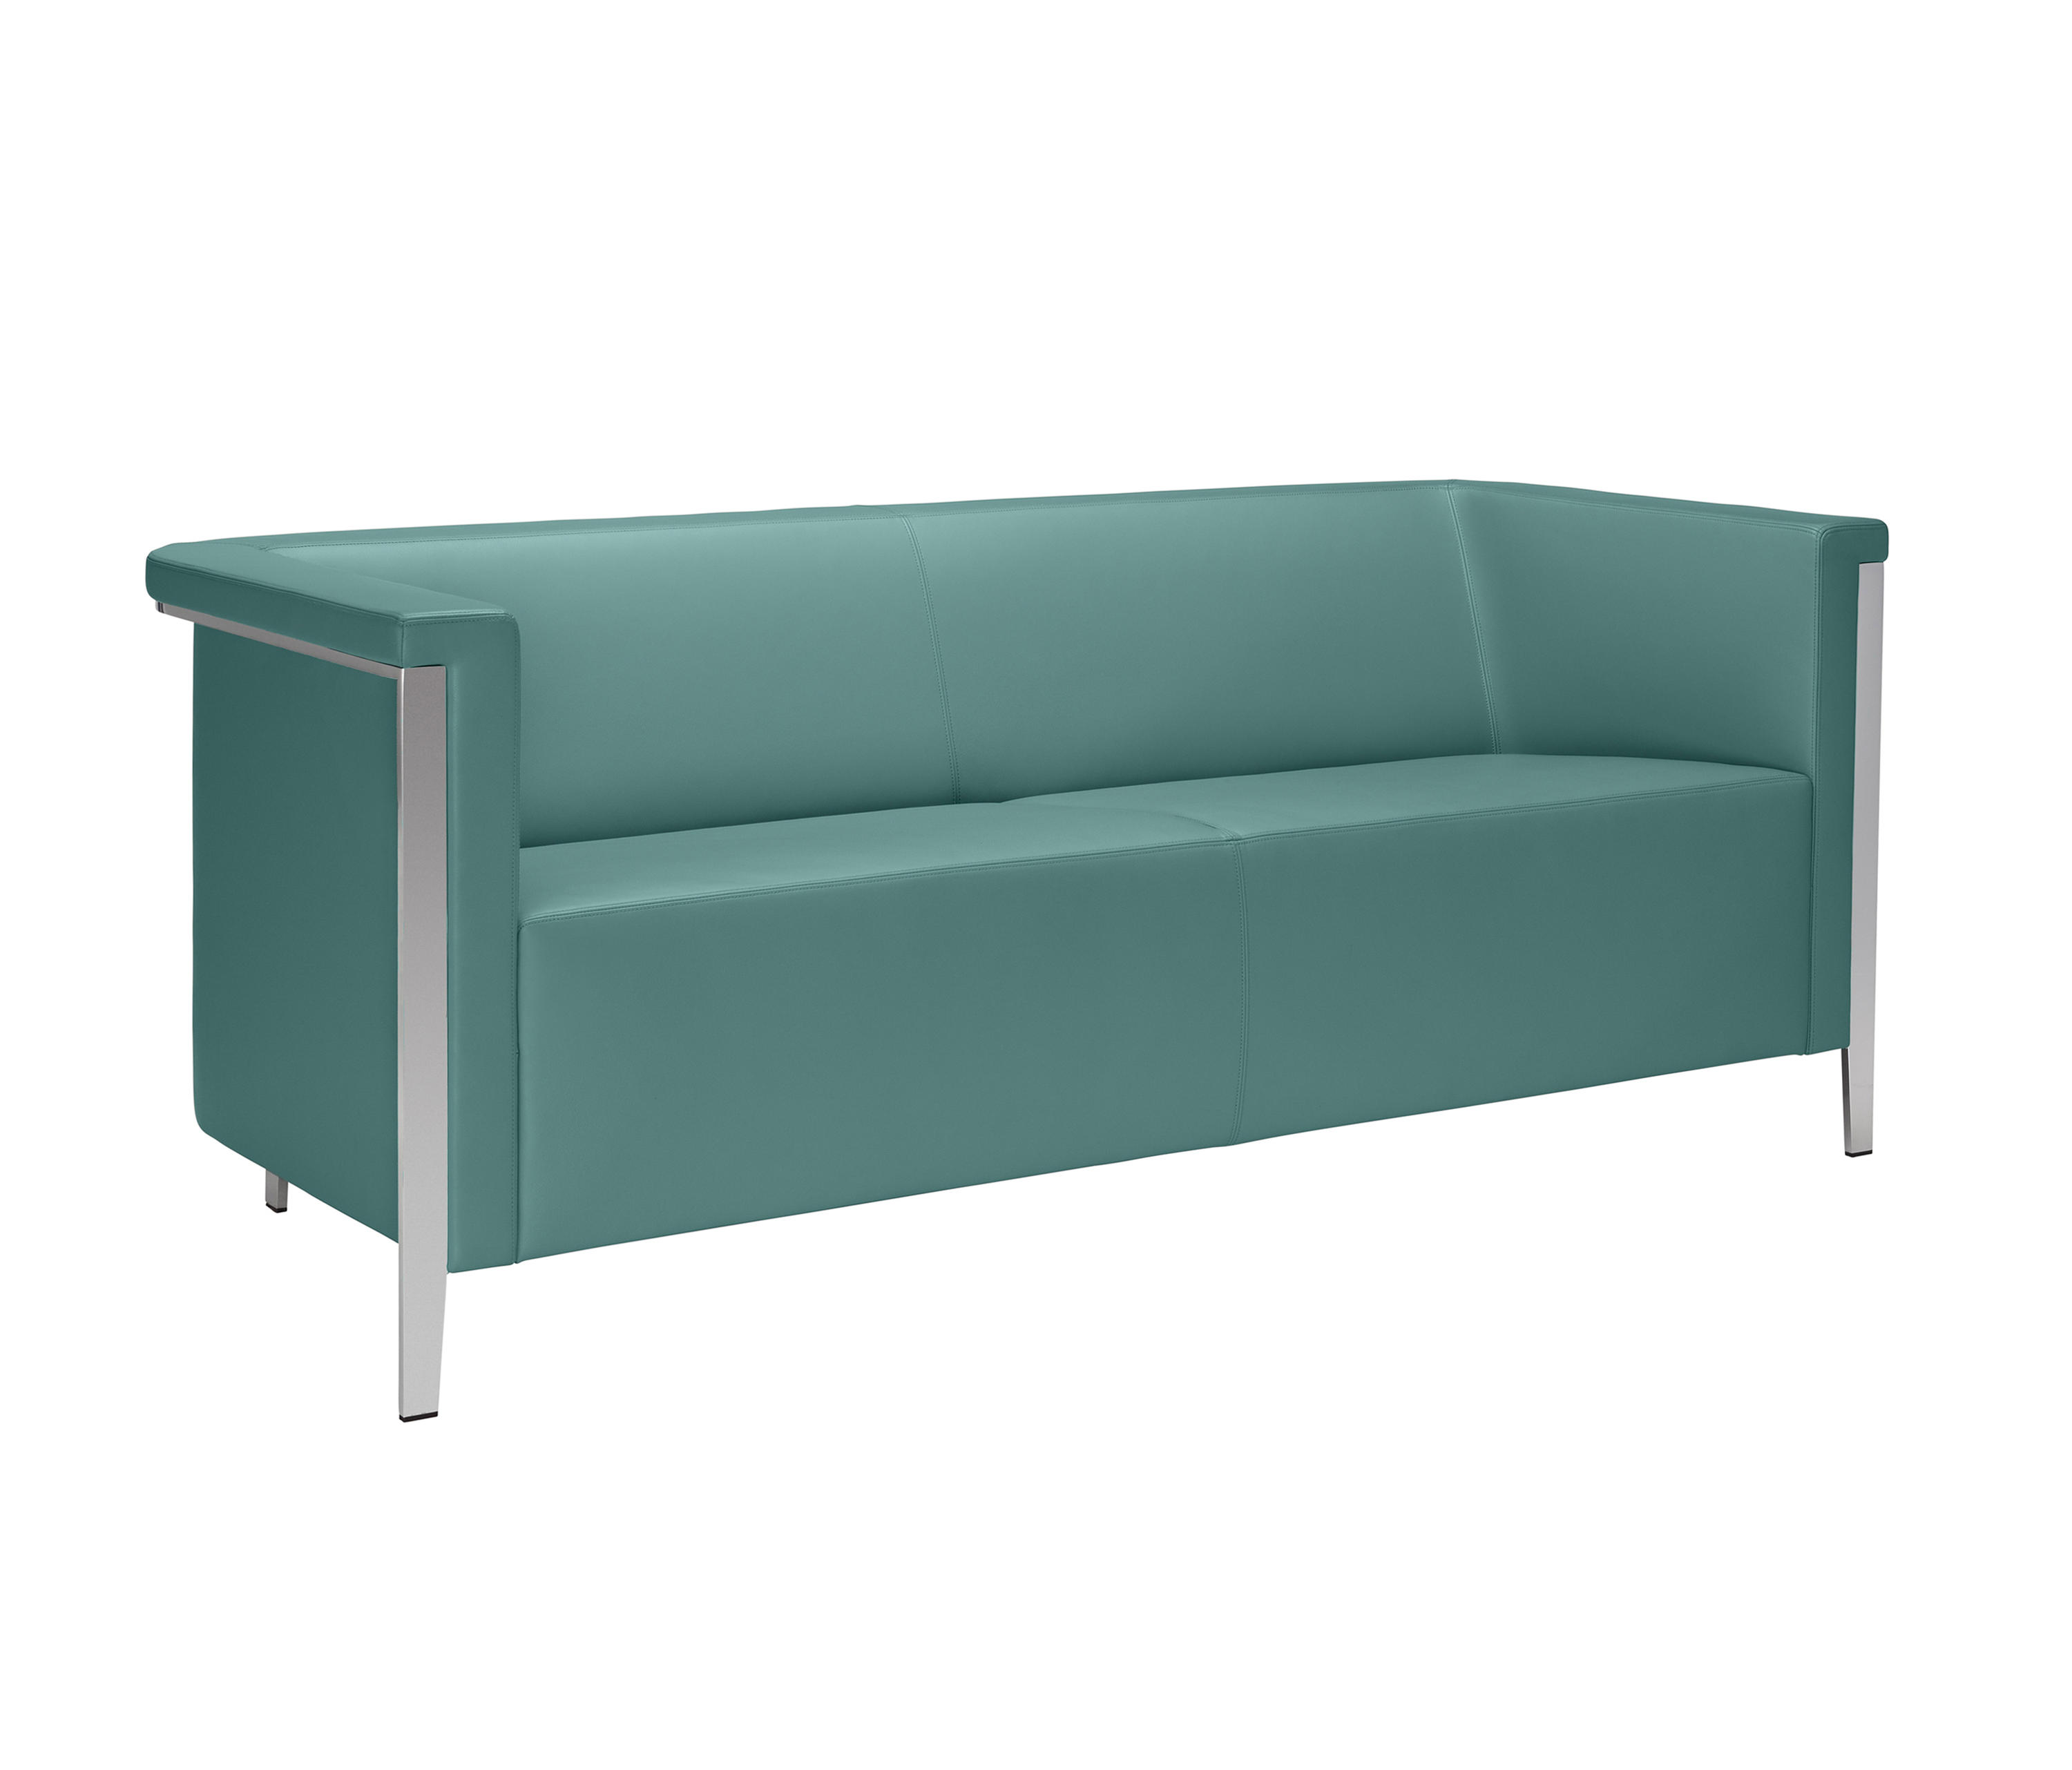 collar sofa 9052 a lounge sofas from brunner architonic